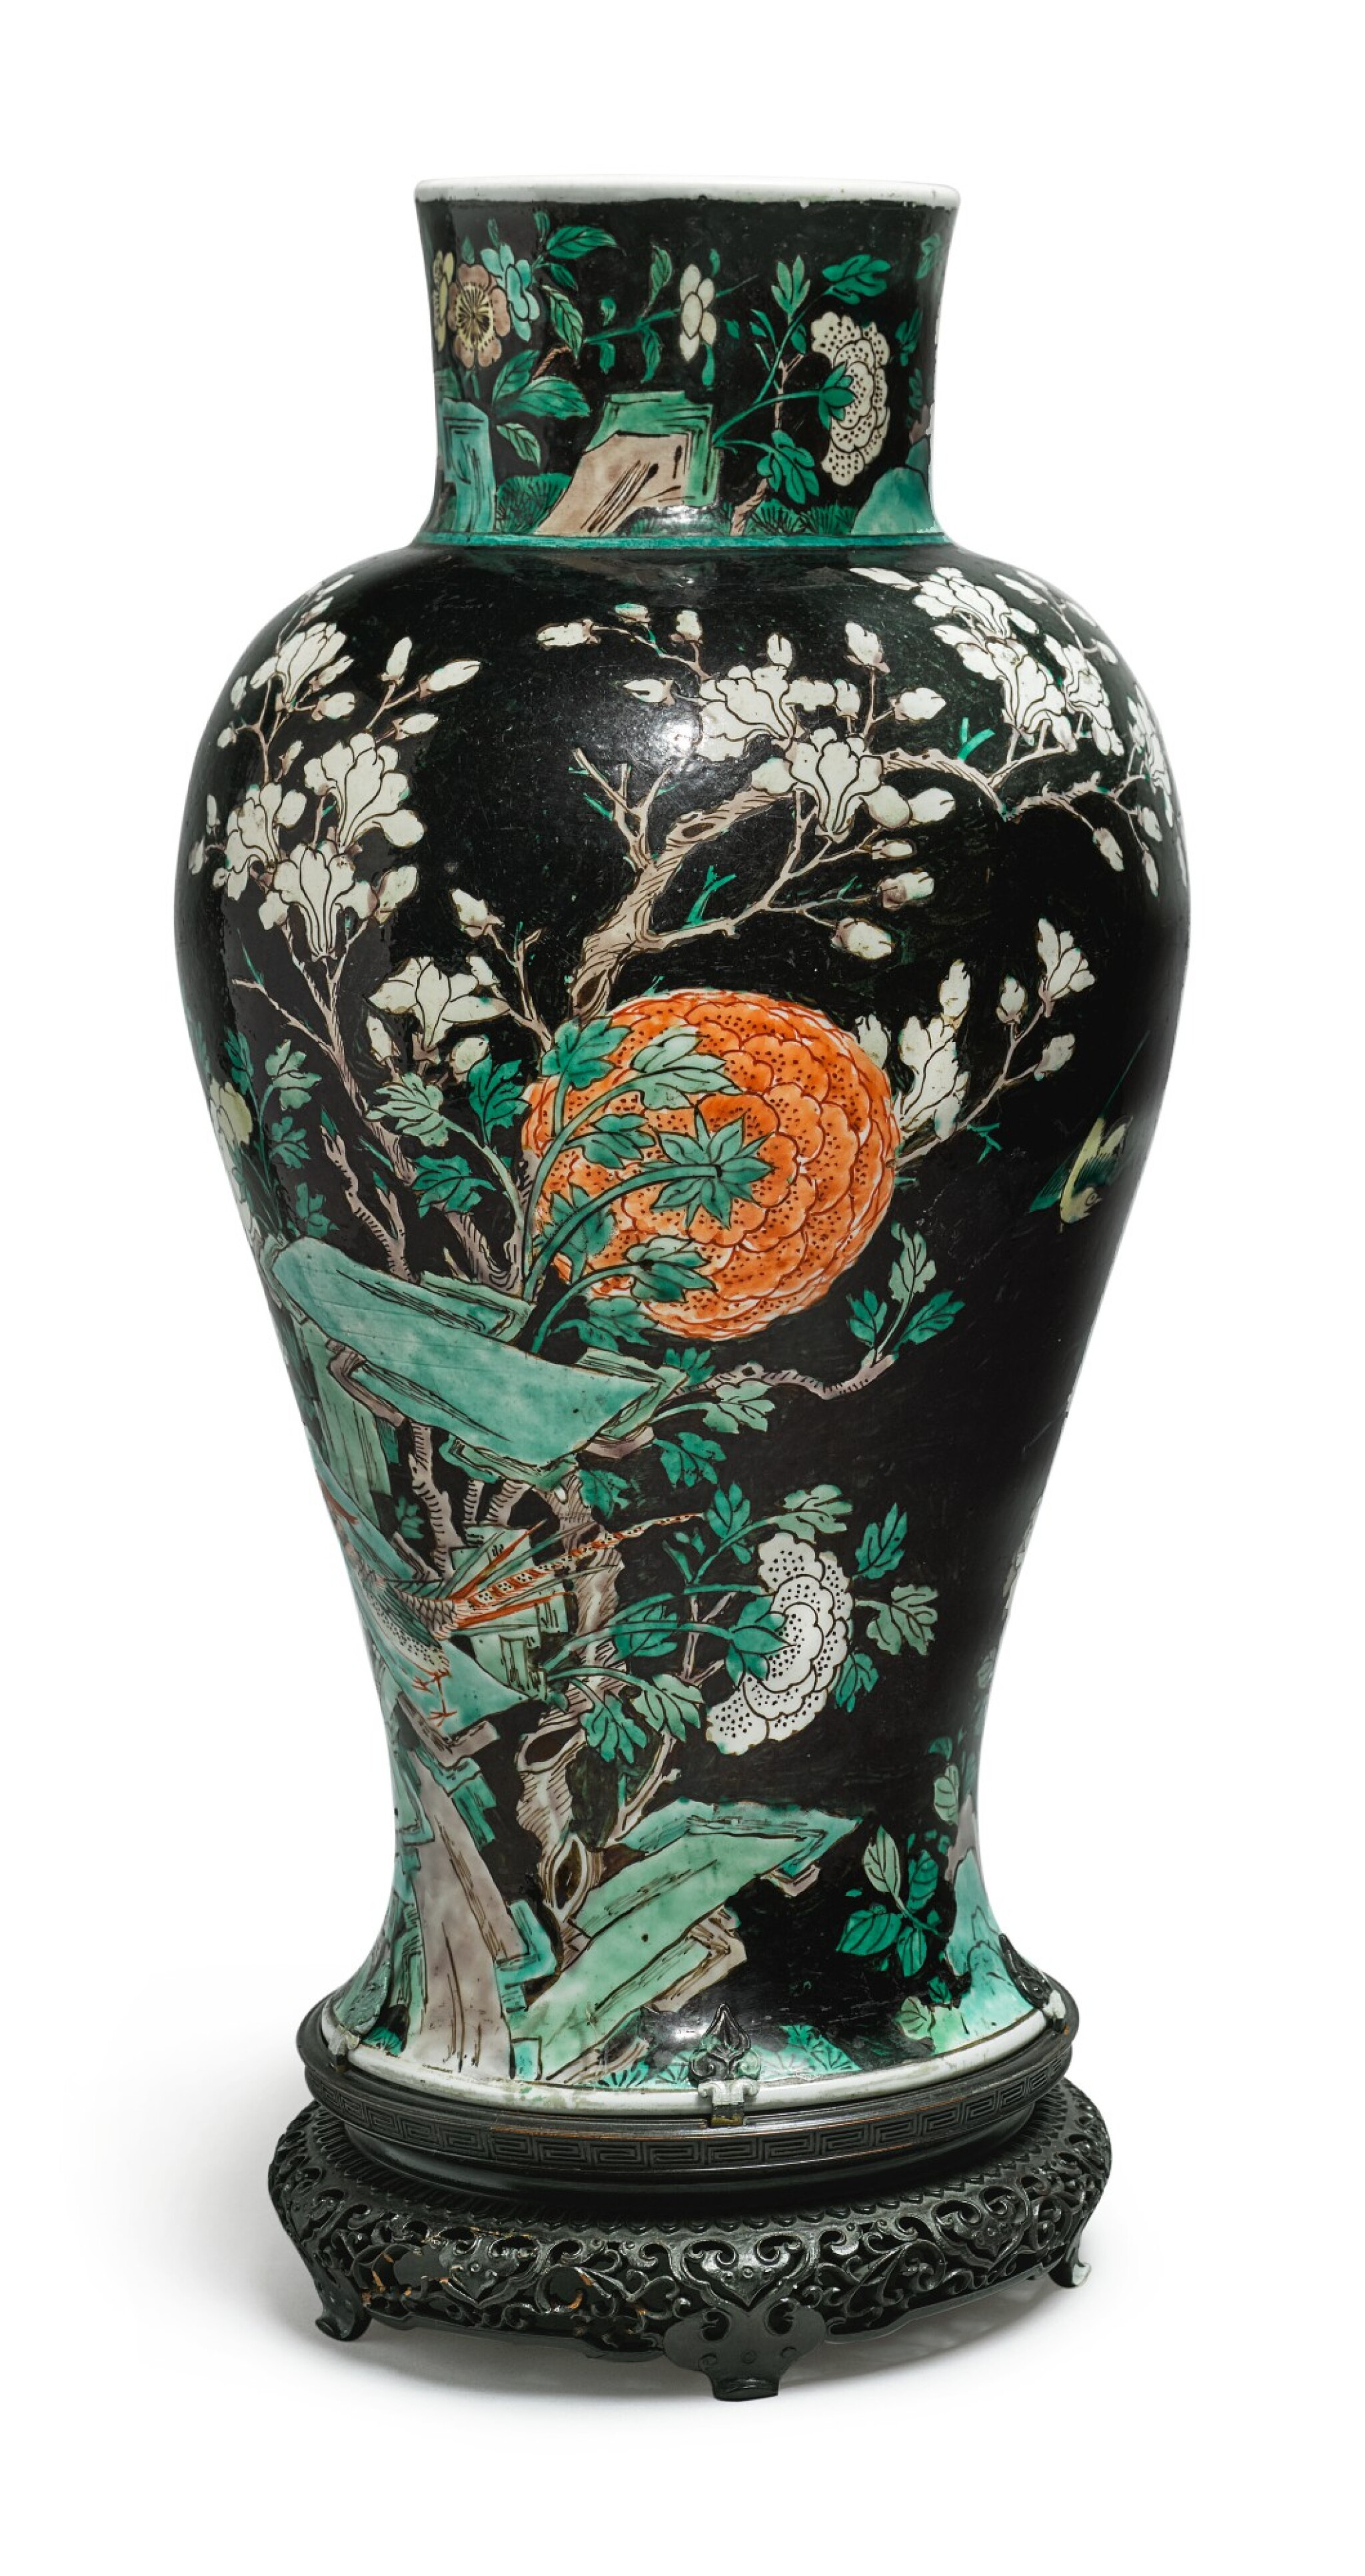 View 1 of Lot 1038. A FAMILLE-NOIRE 'BIRD AND FLOWER' BALUSTER JAR, QING DYNASTY, 19TH CENTURY.